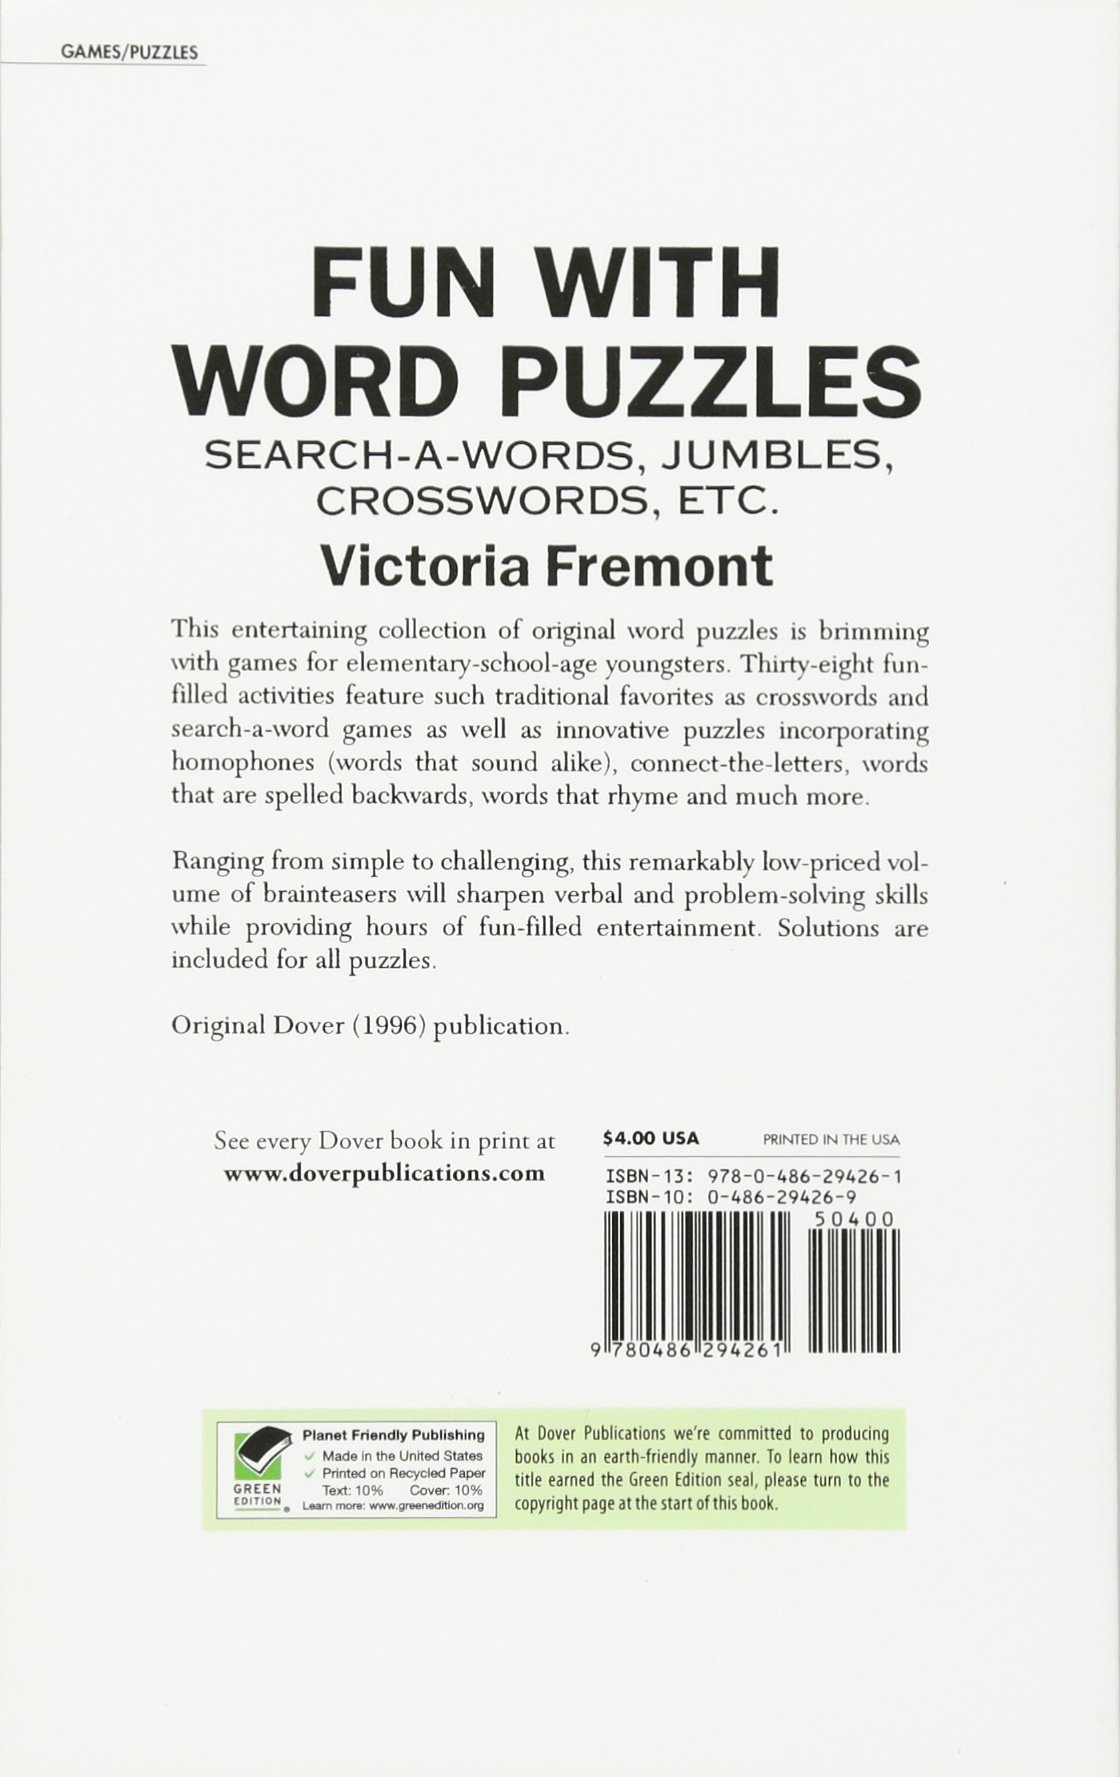 Fun with Word Puzzles: Search-a-Words, Jumbles, Crosswords